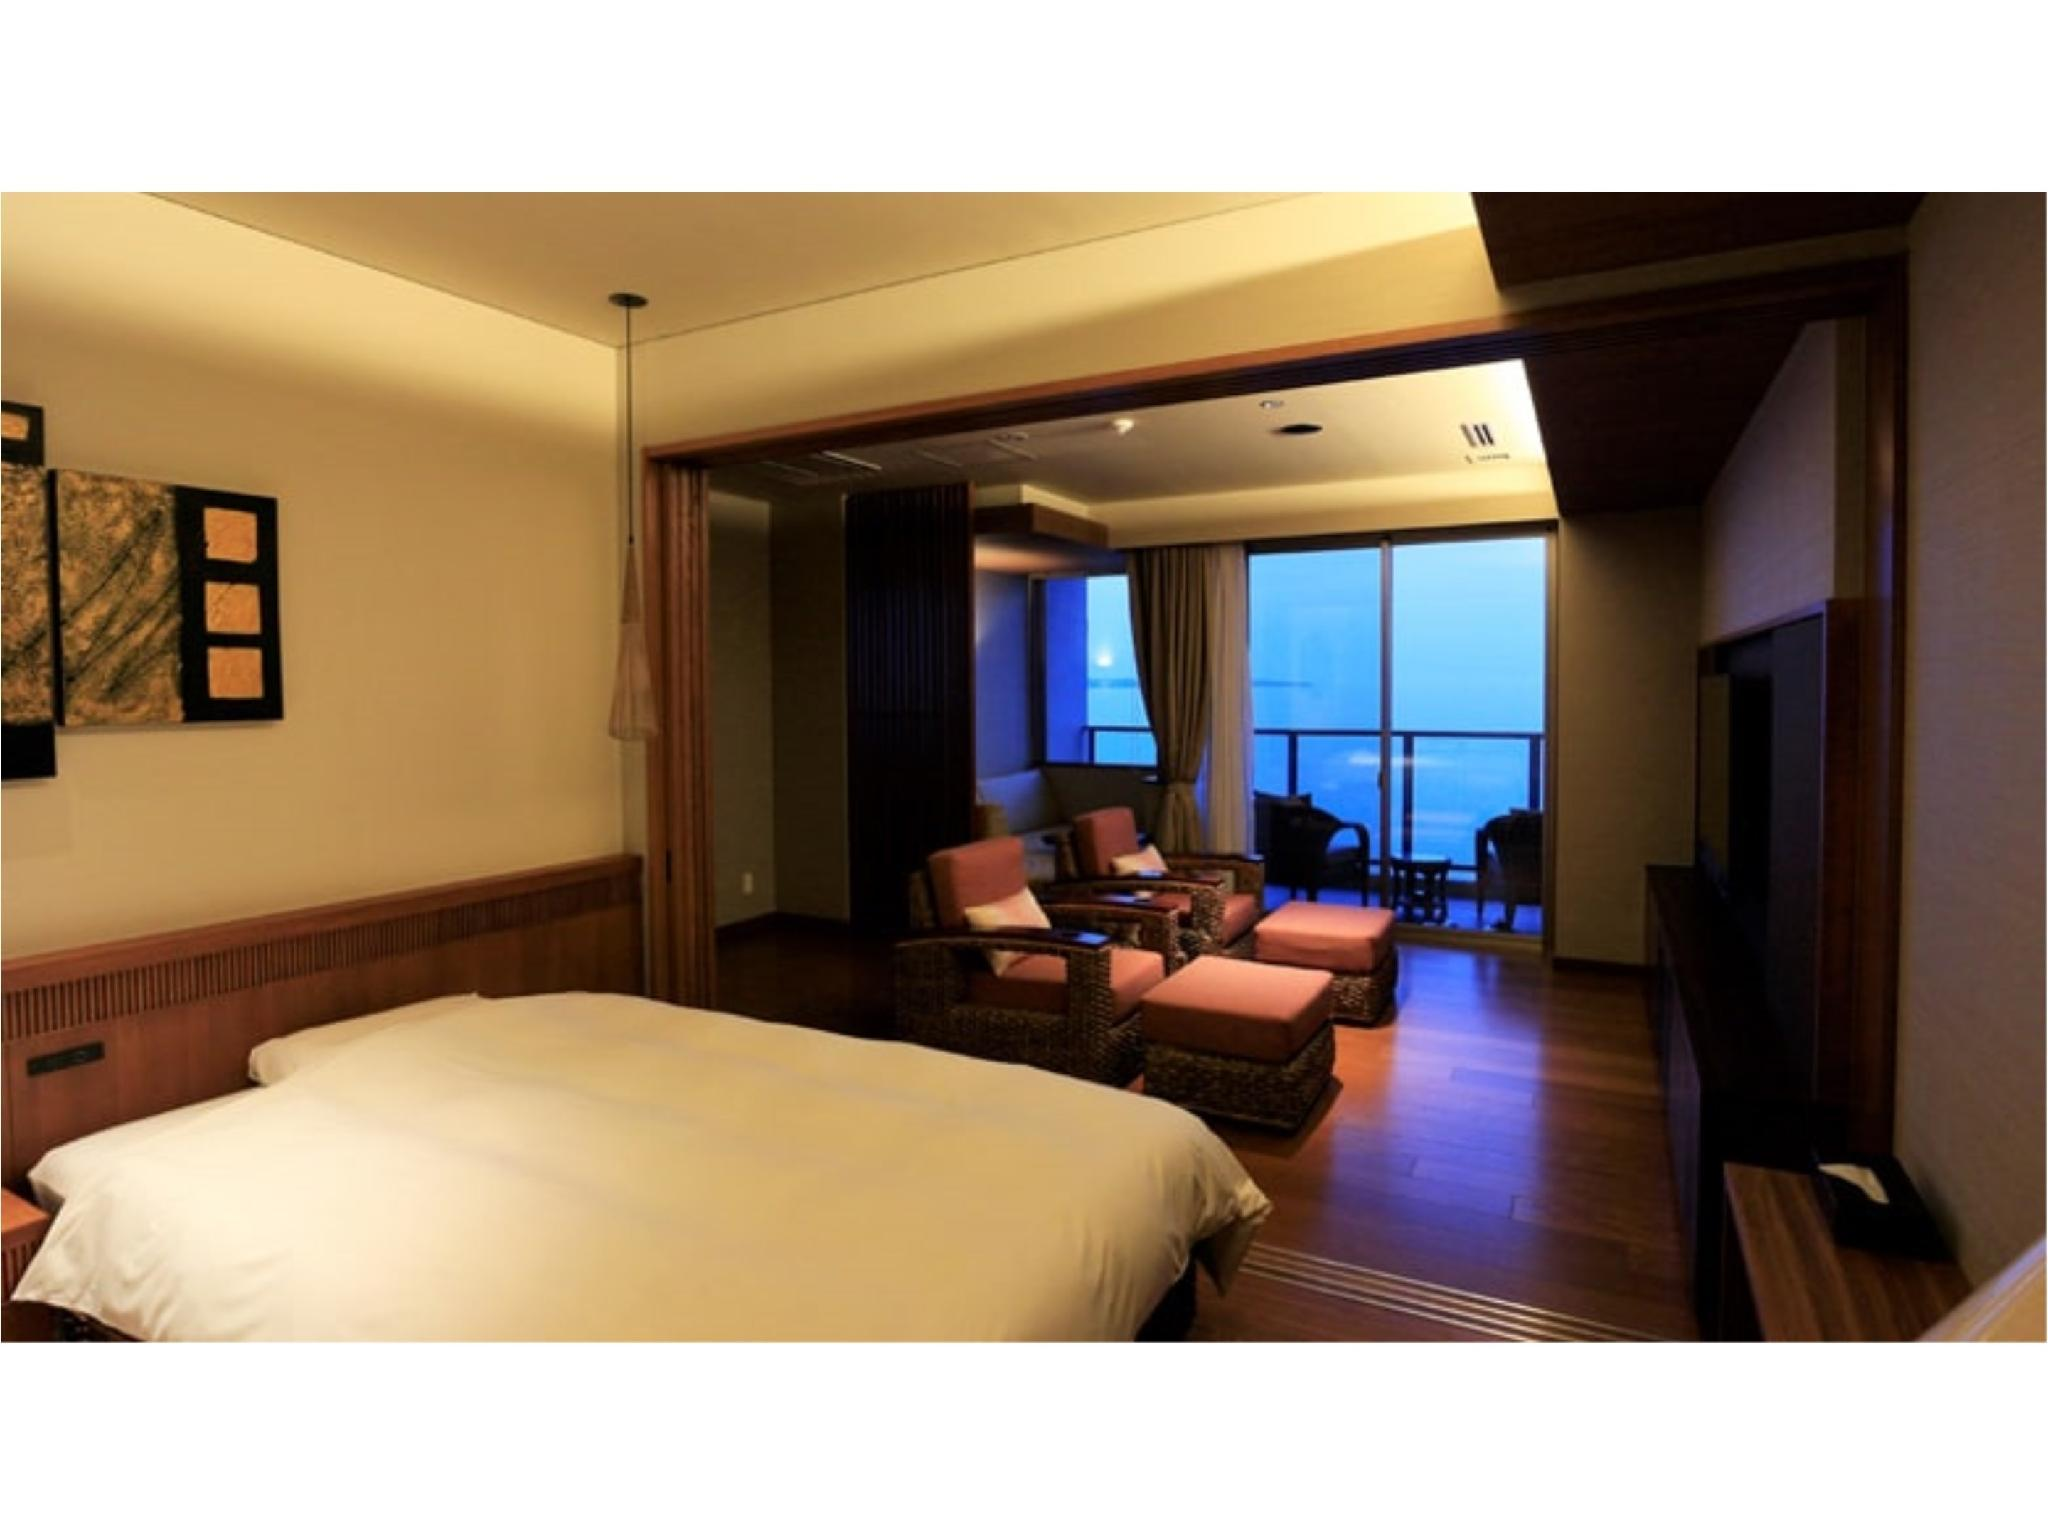 트윈룸(노천탕/샤워부스) *실내탕 없음 (Western-style Room with Open-air Bath *Has shower, no bath in room (*Non-smoking from 2020/12/14))